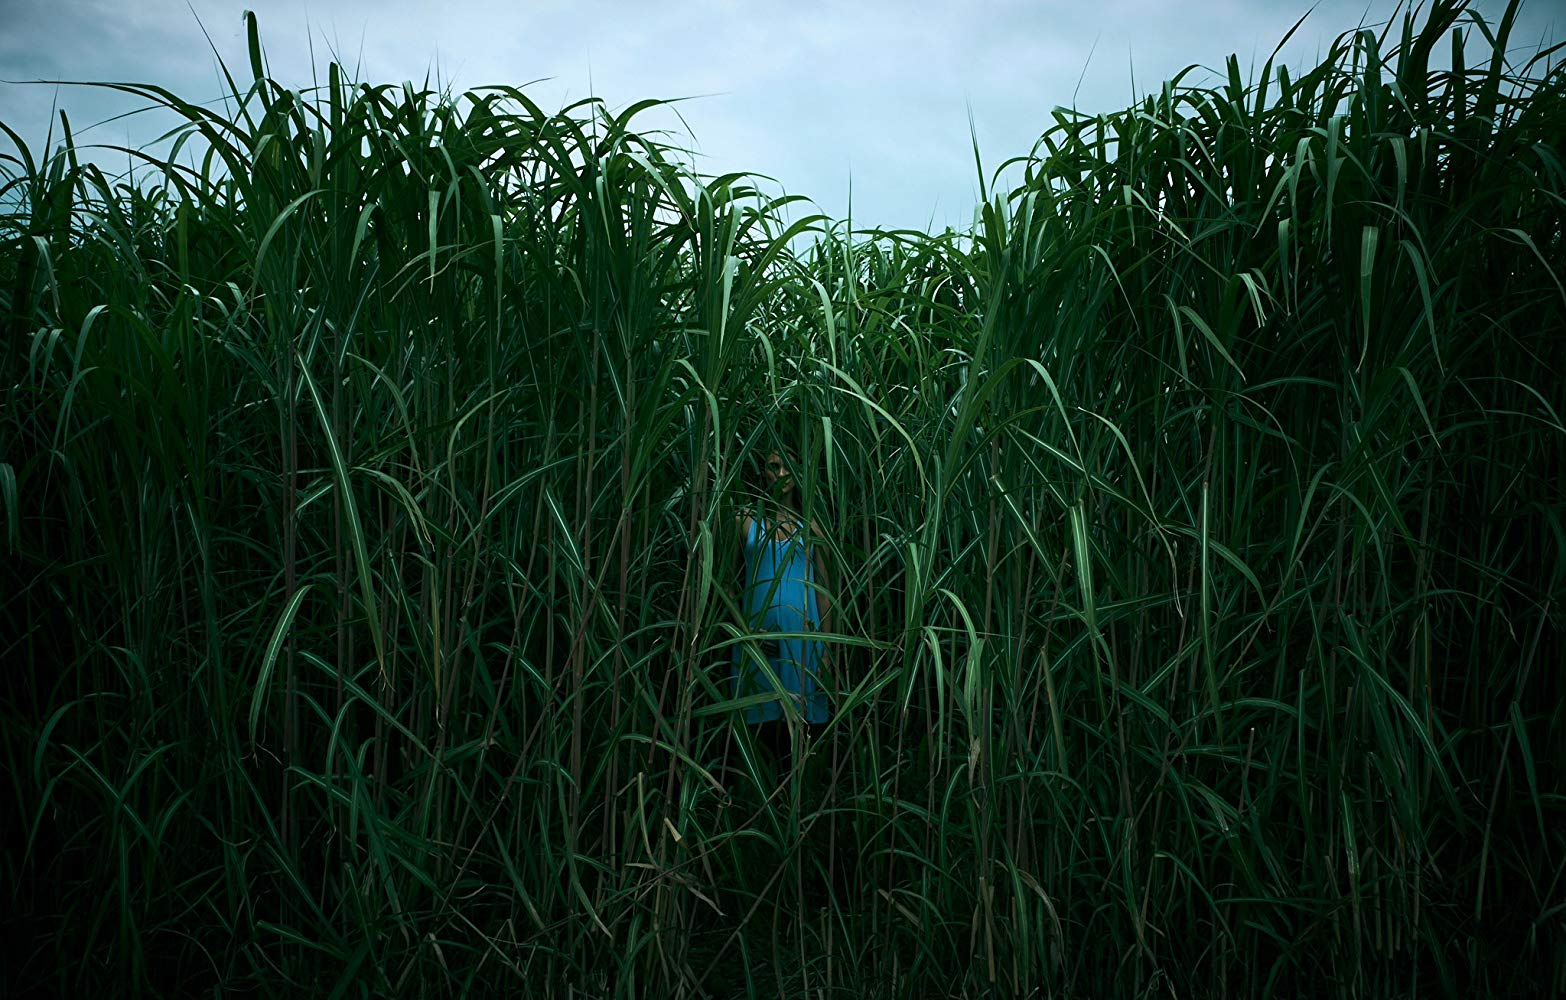 Fantastic Fest Interview: Writer/Director Vincenzo Natali for IN THE TALL GRASS